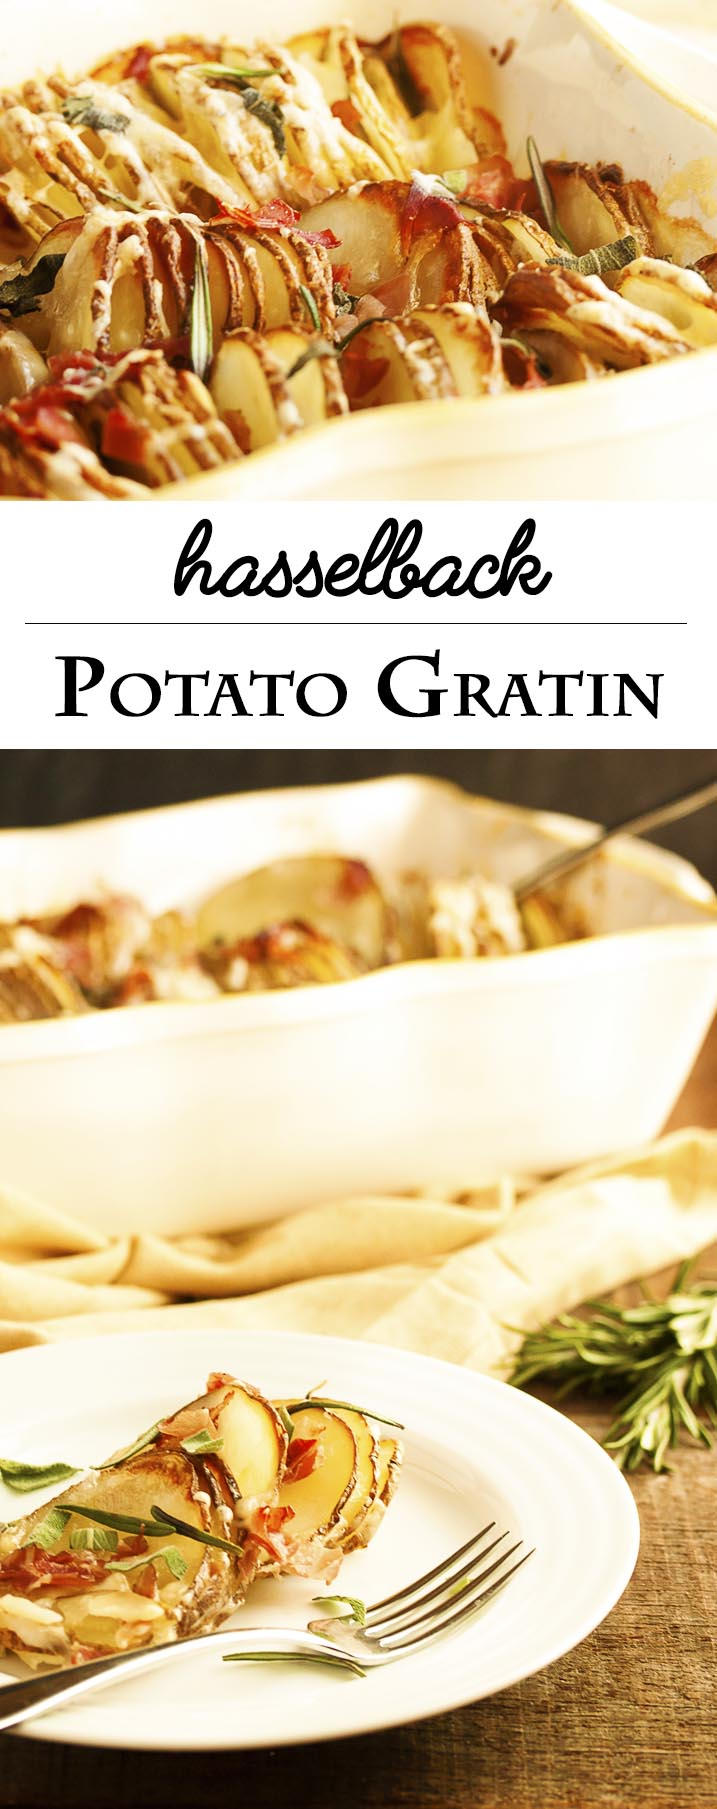 Hasselback Potato Gratin - All the yummy, crispy edges of hasselback potatoes and all the cheesy, creaminess of potato gratin contained in one casserole dish. With an Italian twist! | justalittlebitofbacon.com